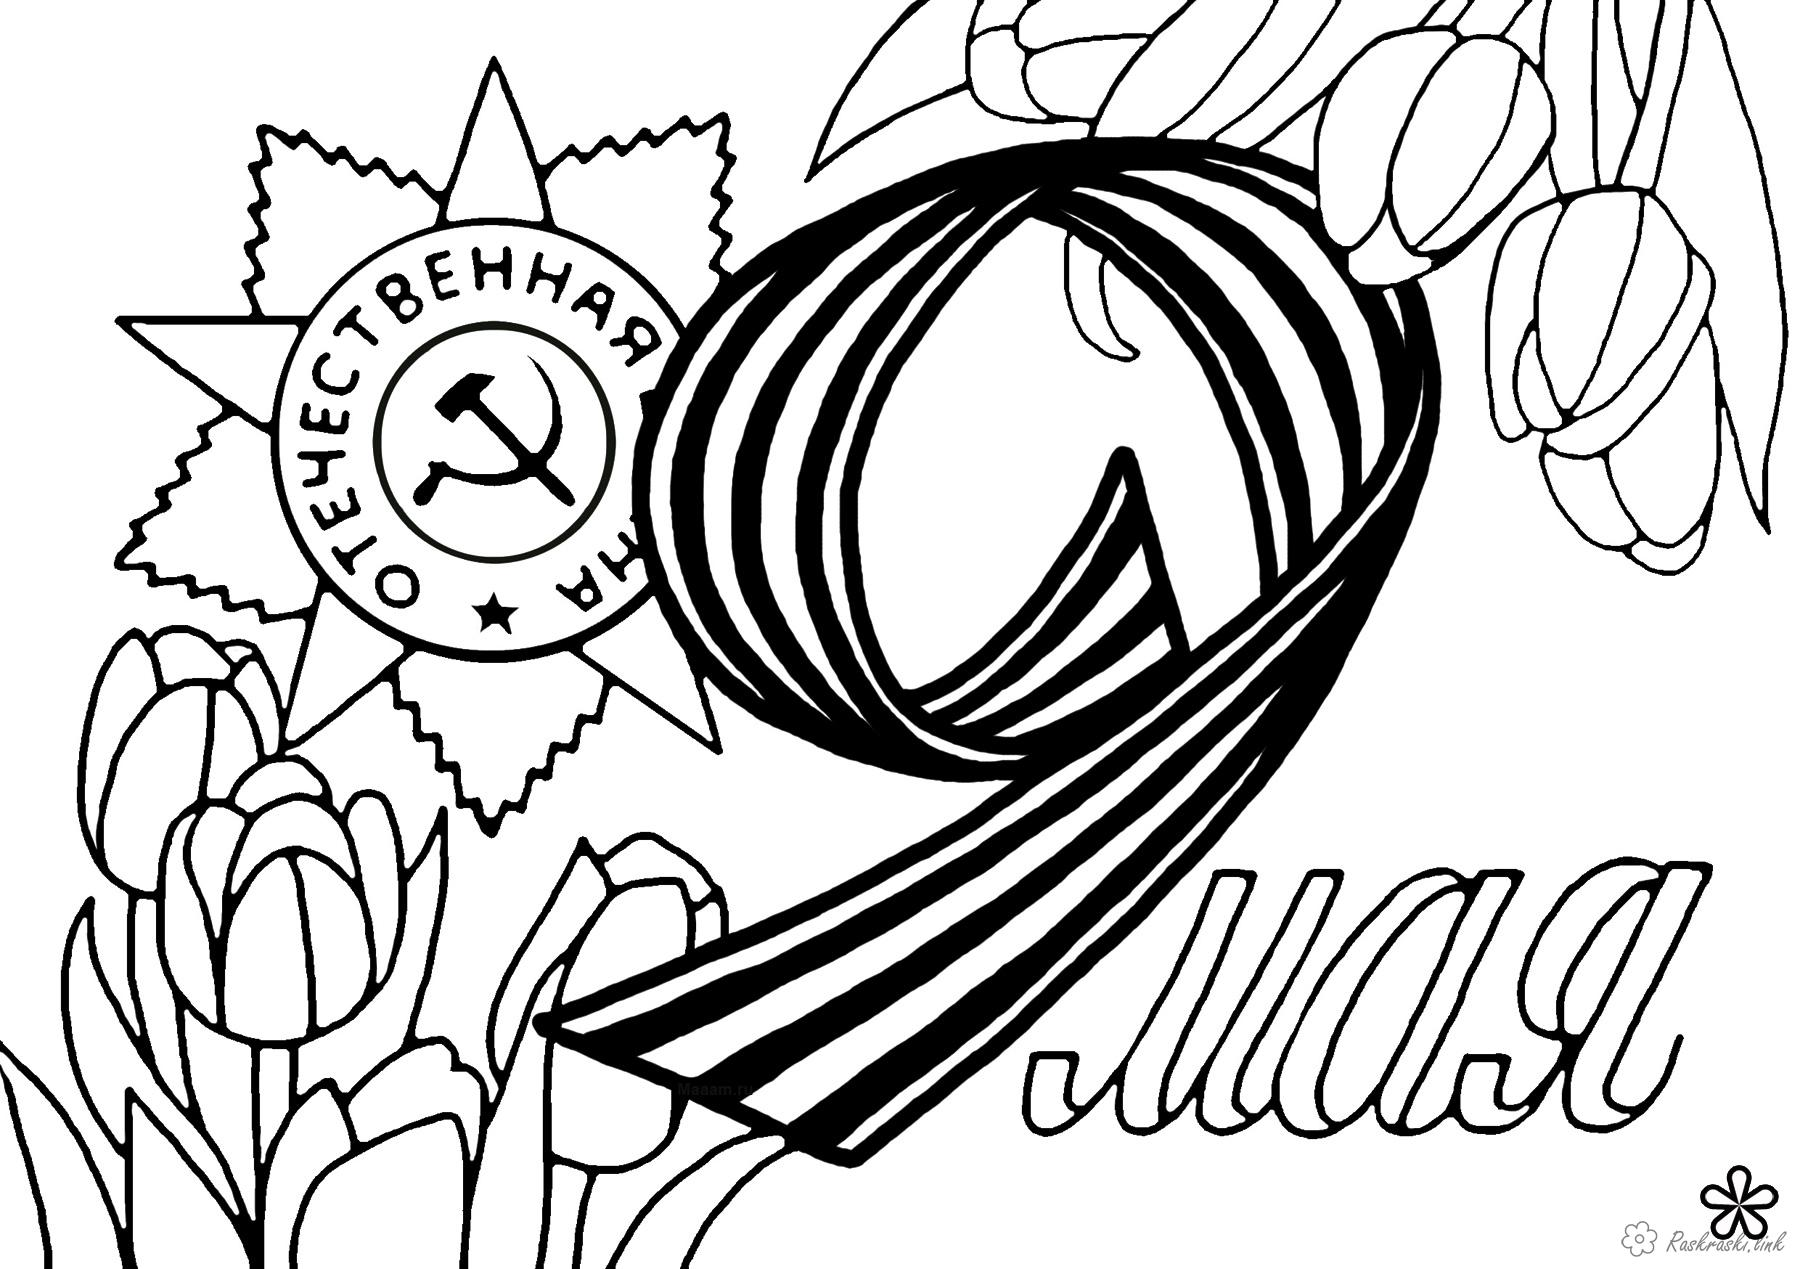 Coloring tulips coloring pages May 9 Victory Day for children, coloring pages St. George ribbon May 9, tulips